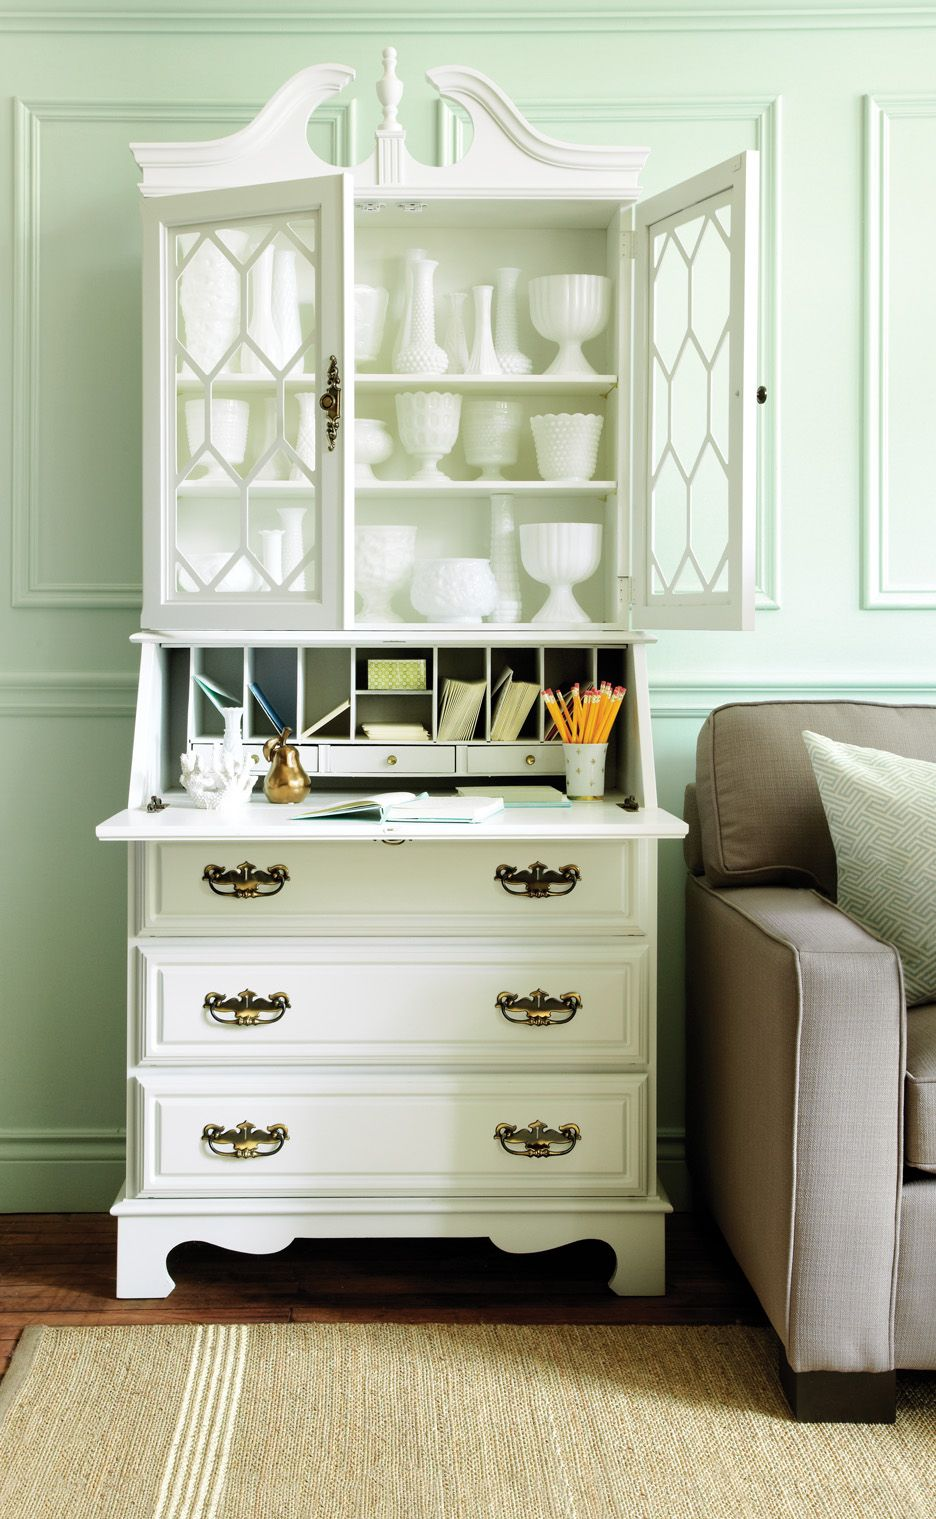 Photo By Roberto Caruso Benjamin Moore Light Pistachio Paint For Kitchen Walls Home Office Design